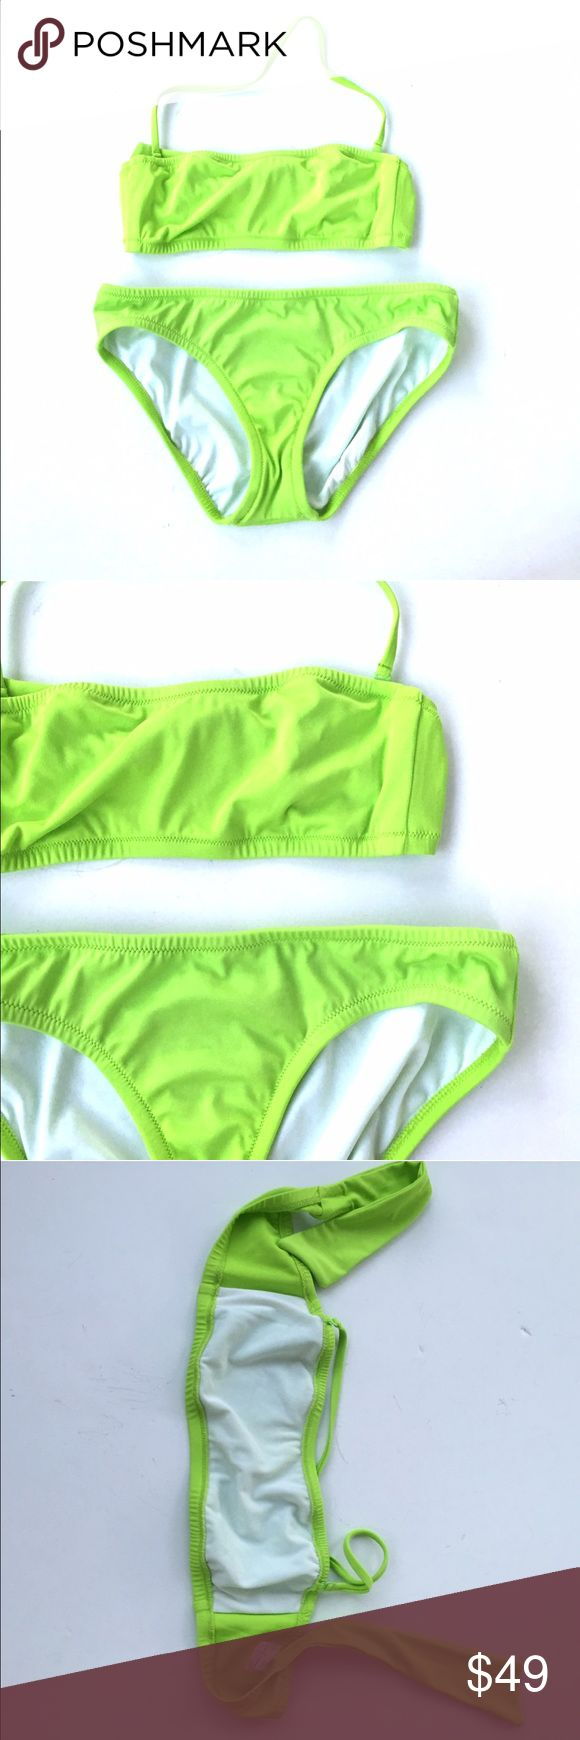 J. Crew lime green bandeau bikini top Pretty lime green color. Size small. Gently used.  Light fraying on back side of bottoms near seam.  $100 retail value. Bottom size small petite.   •no trades•no offsite transactions•no low balls•offers considered through the offer feature only!•save when you bundle• iir• J. Crew Swim Bikinis